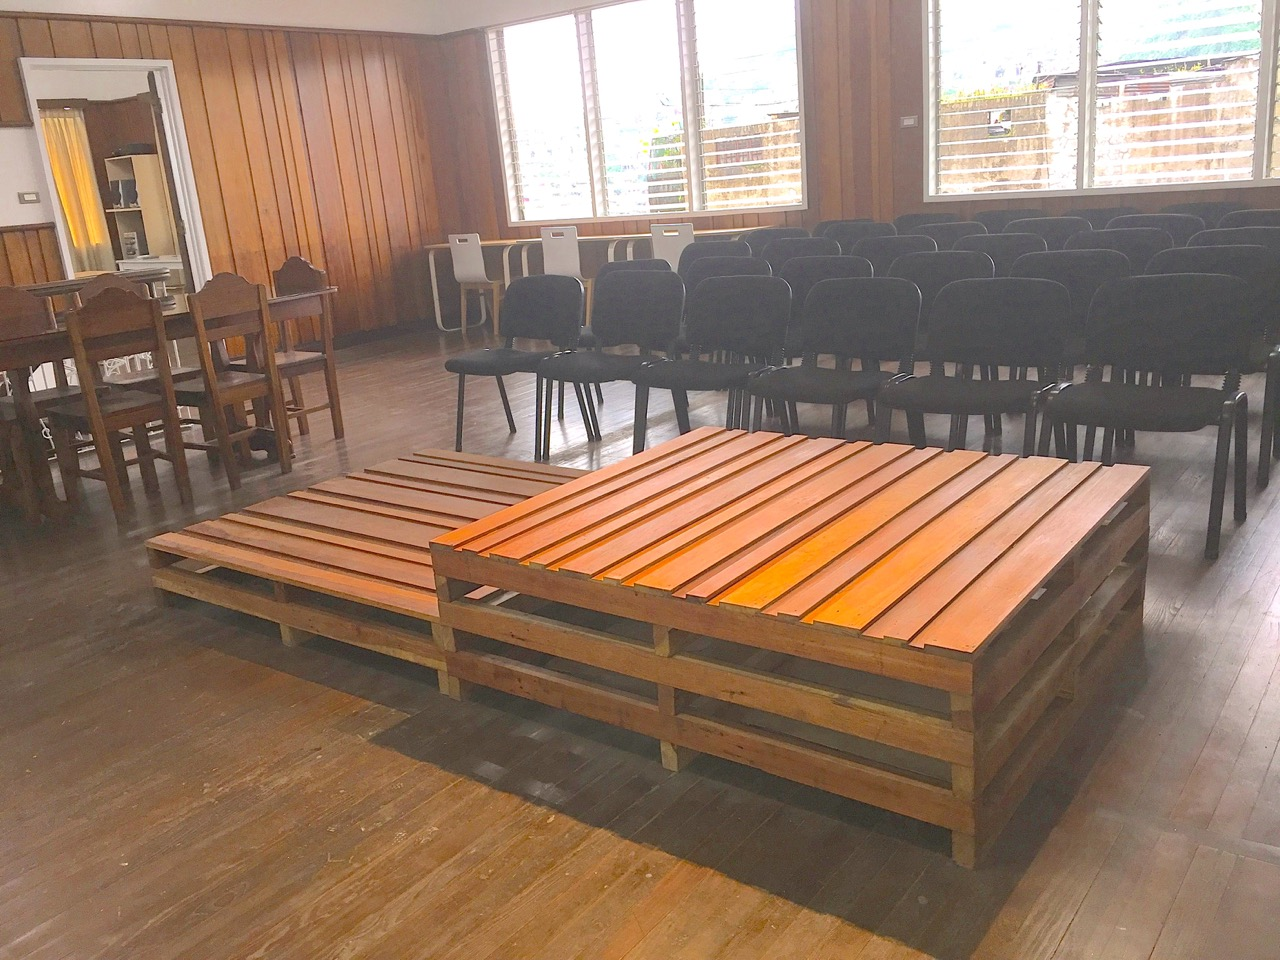 A wooden stage for town halls and speaking engagements.